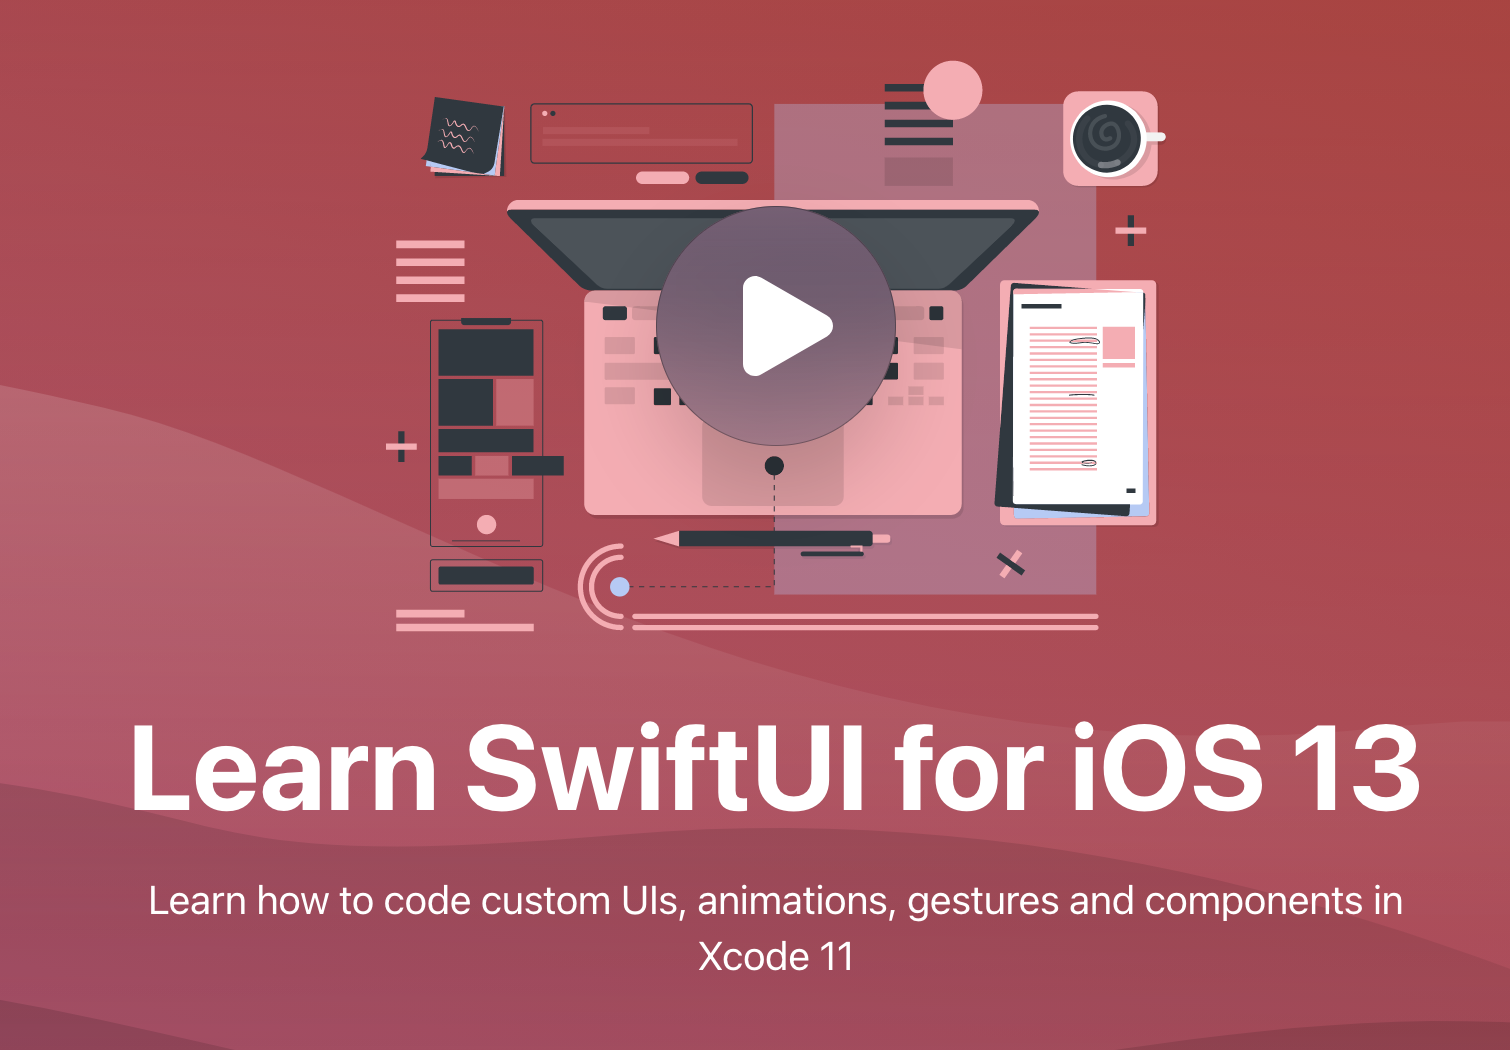 Learn SwiftUI course